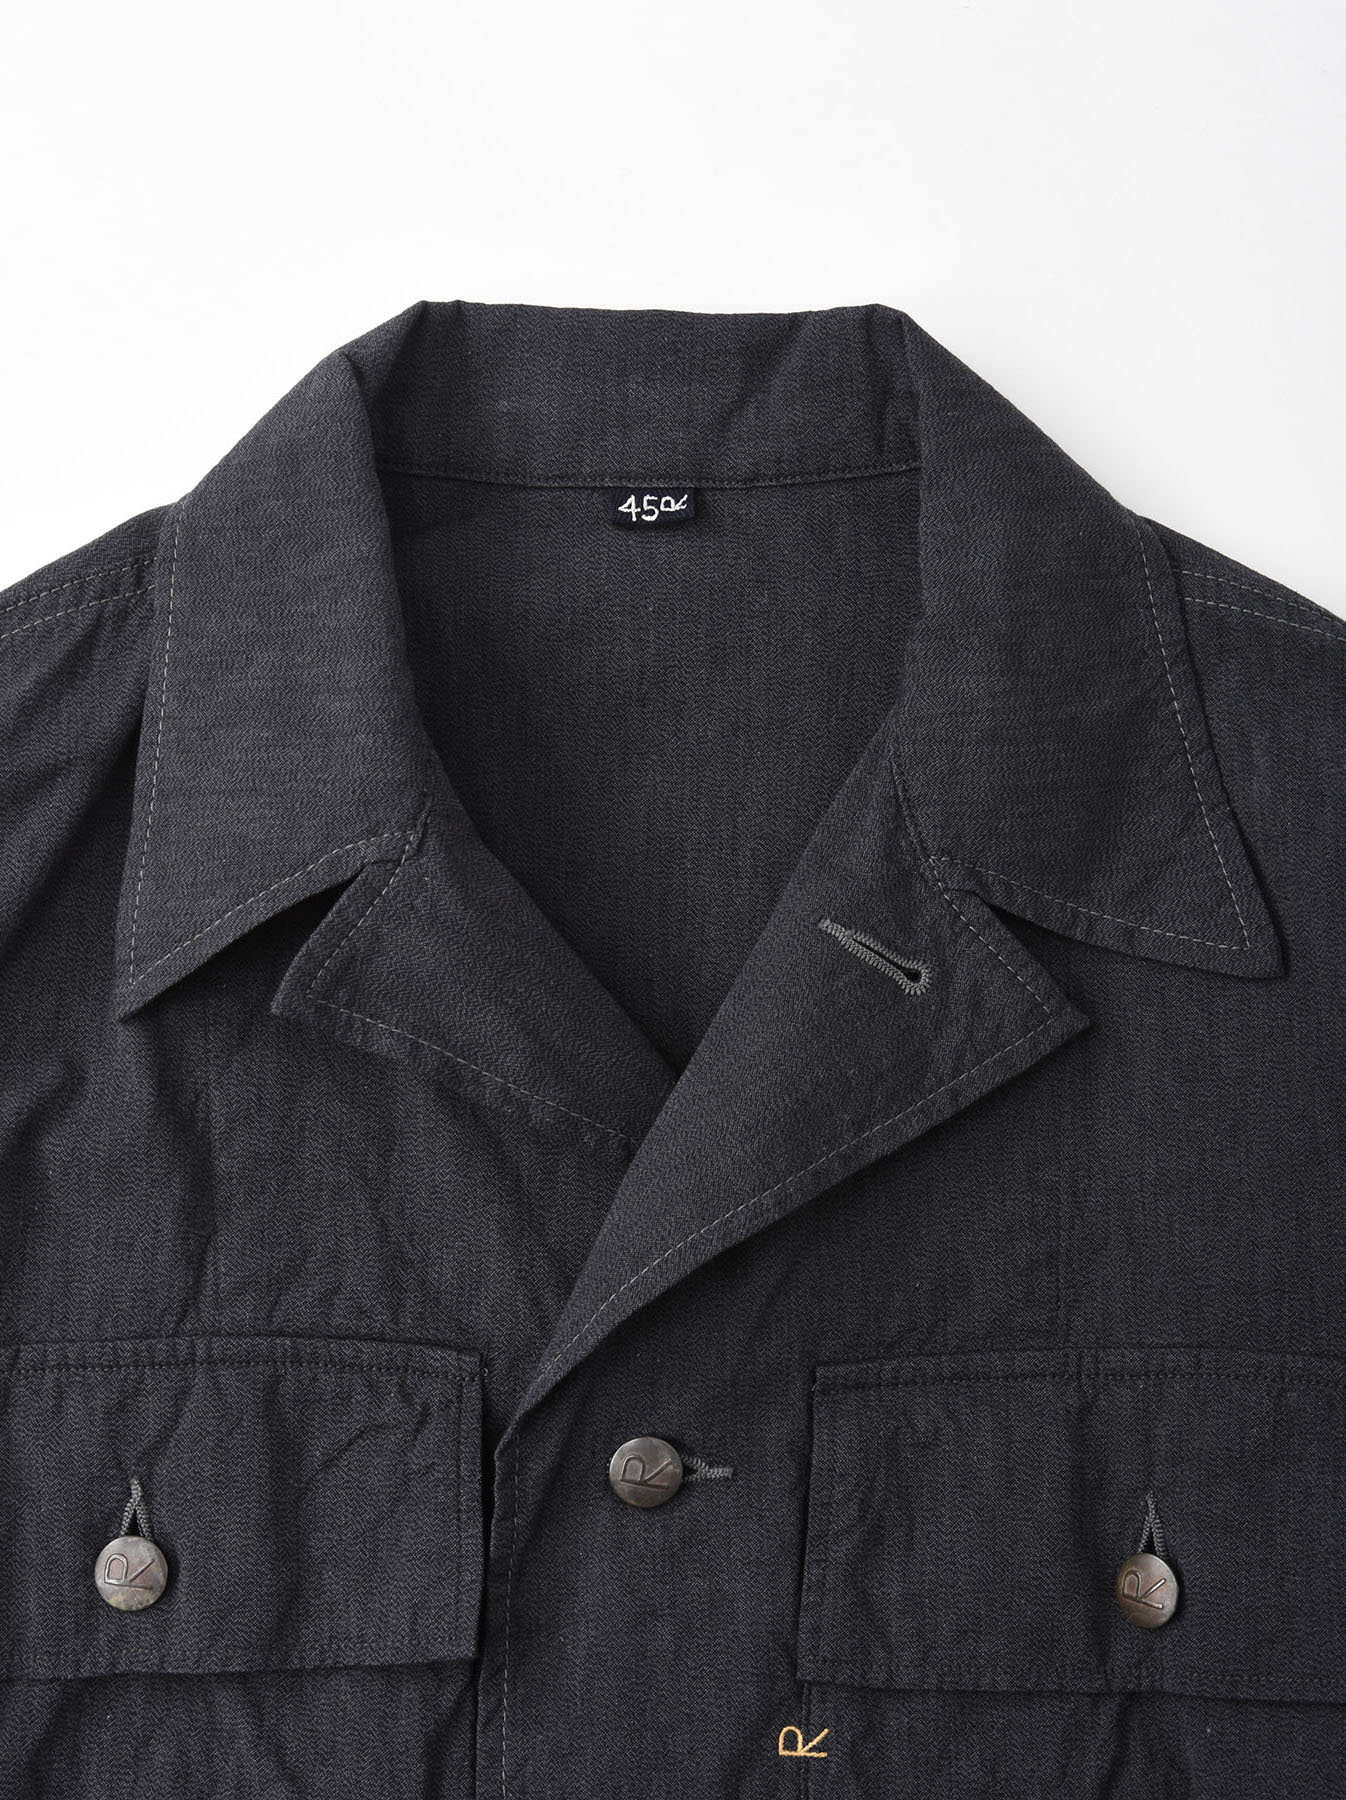 WH Grandrelle 908 Military Coverall-7